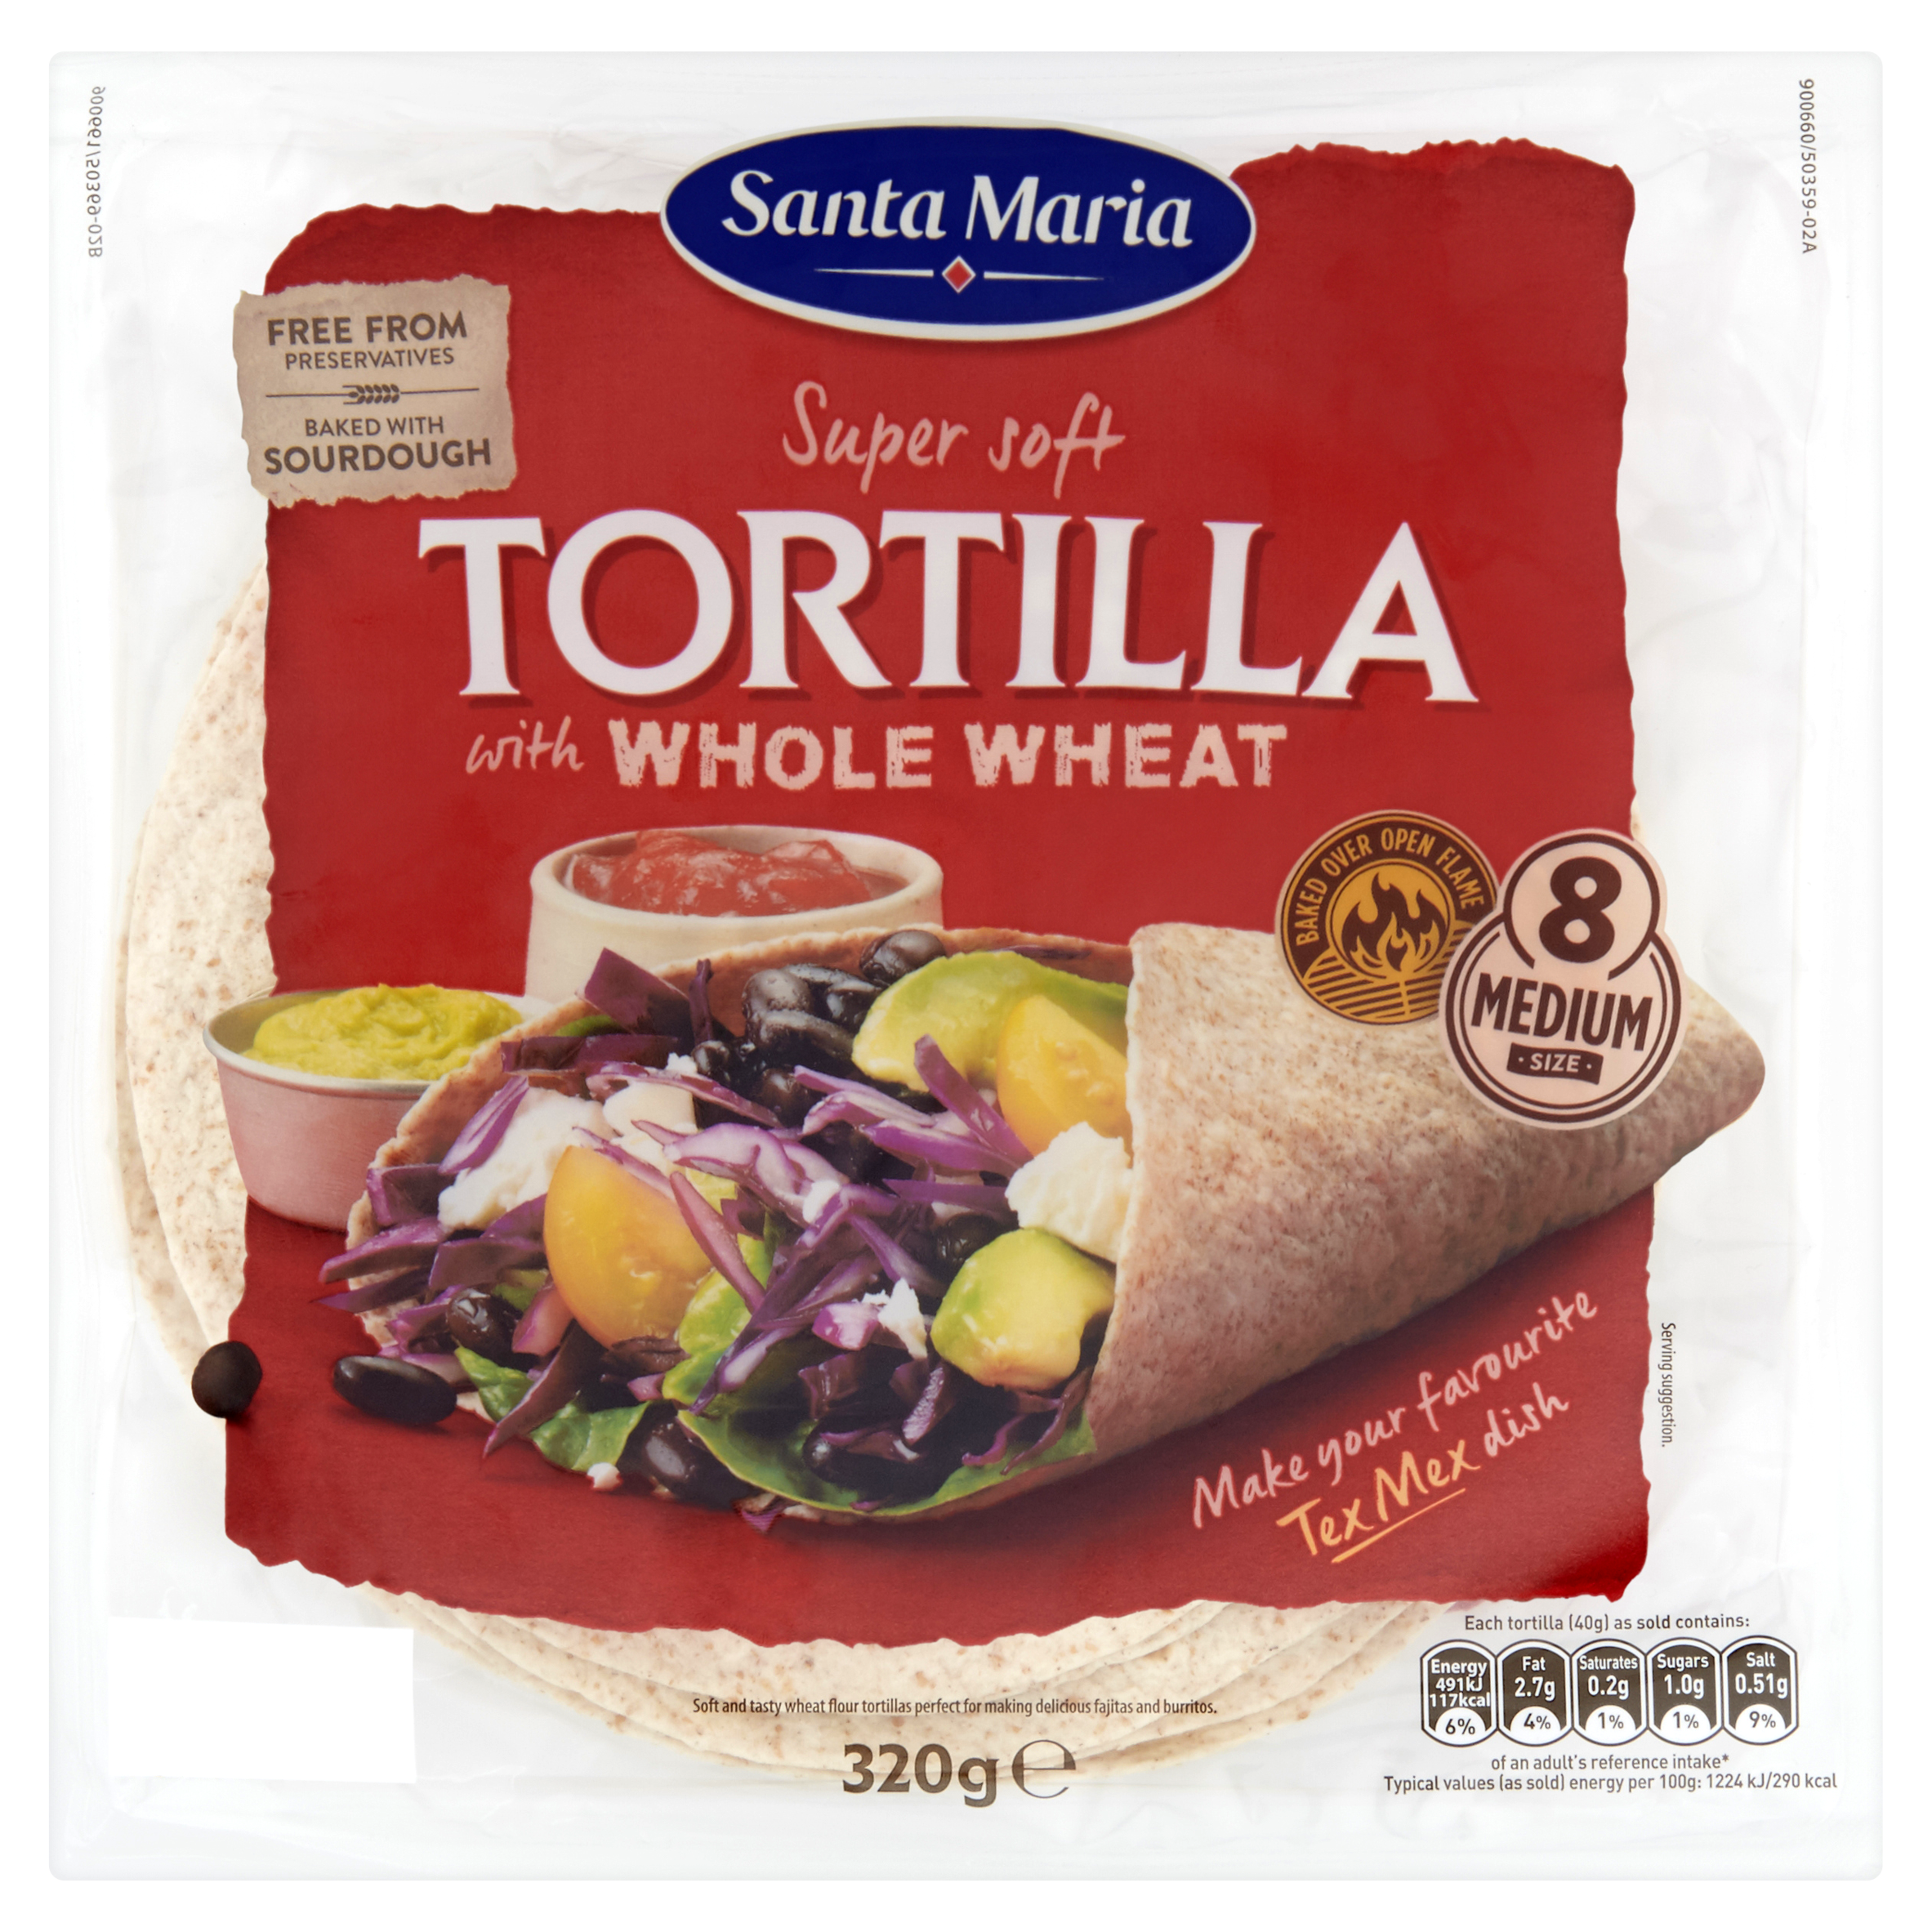 Soft Tortillas with Whole wheat